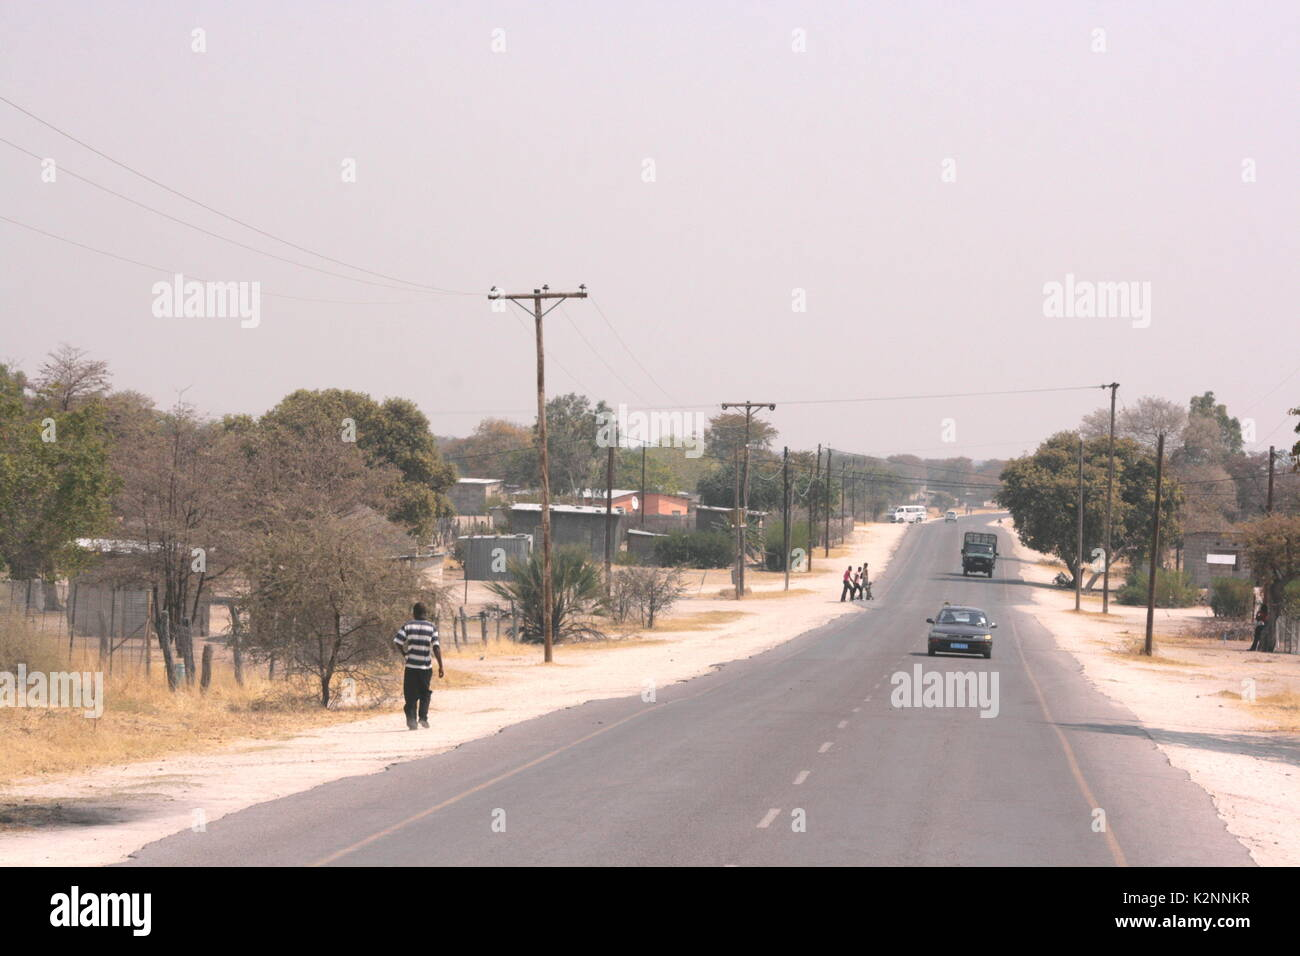 The main road into the town of Maun in Northern Botswana, on the edge of the Okavango Delta - Stock Image